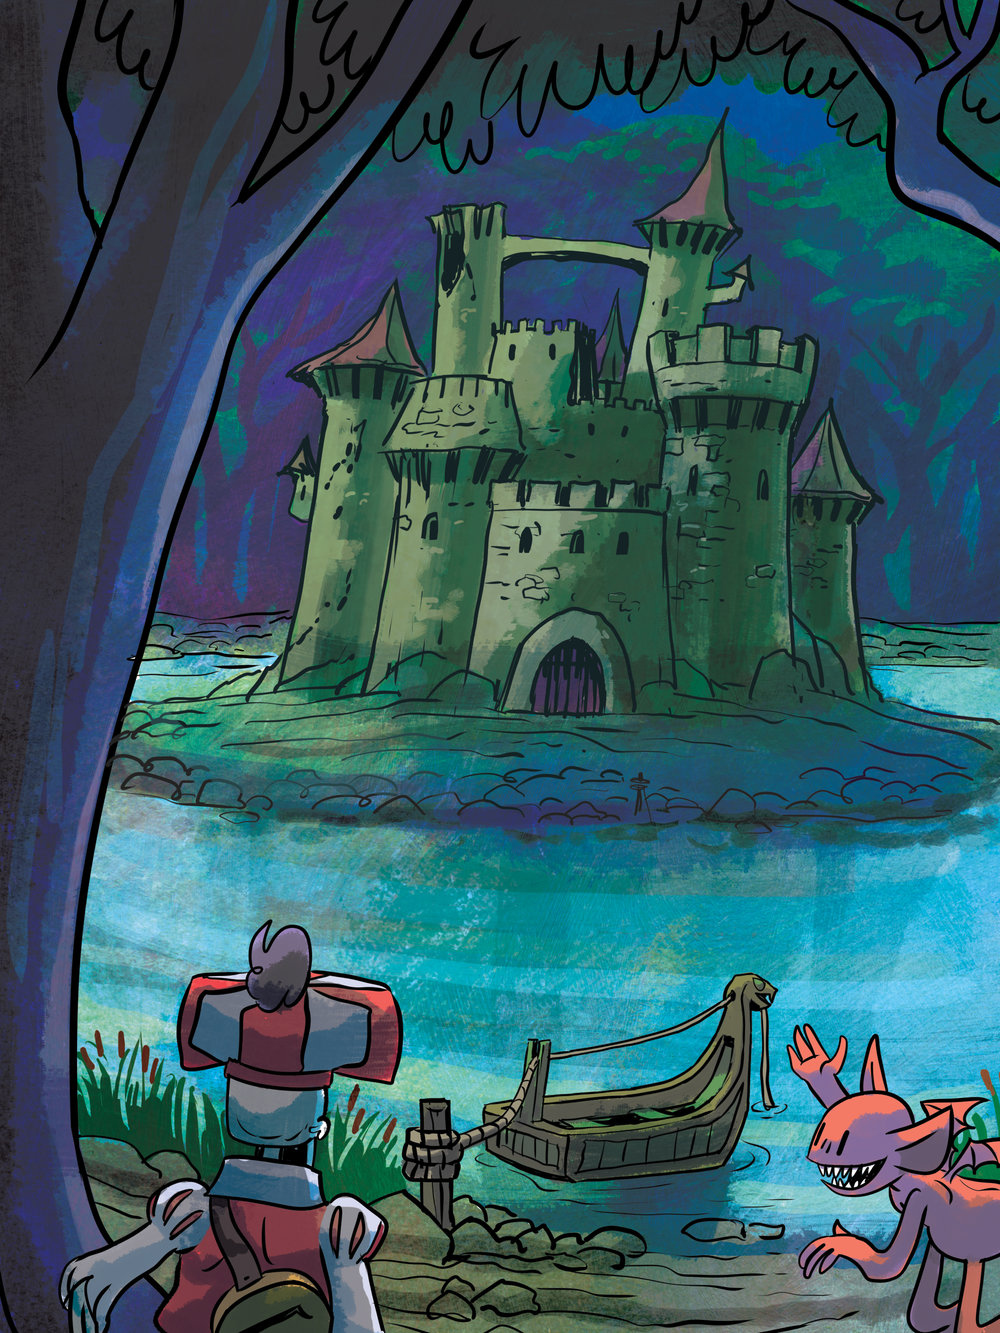 Rickety-Stitch-fantasy-comic-Castle-Lake.jpg